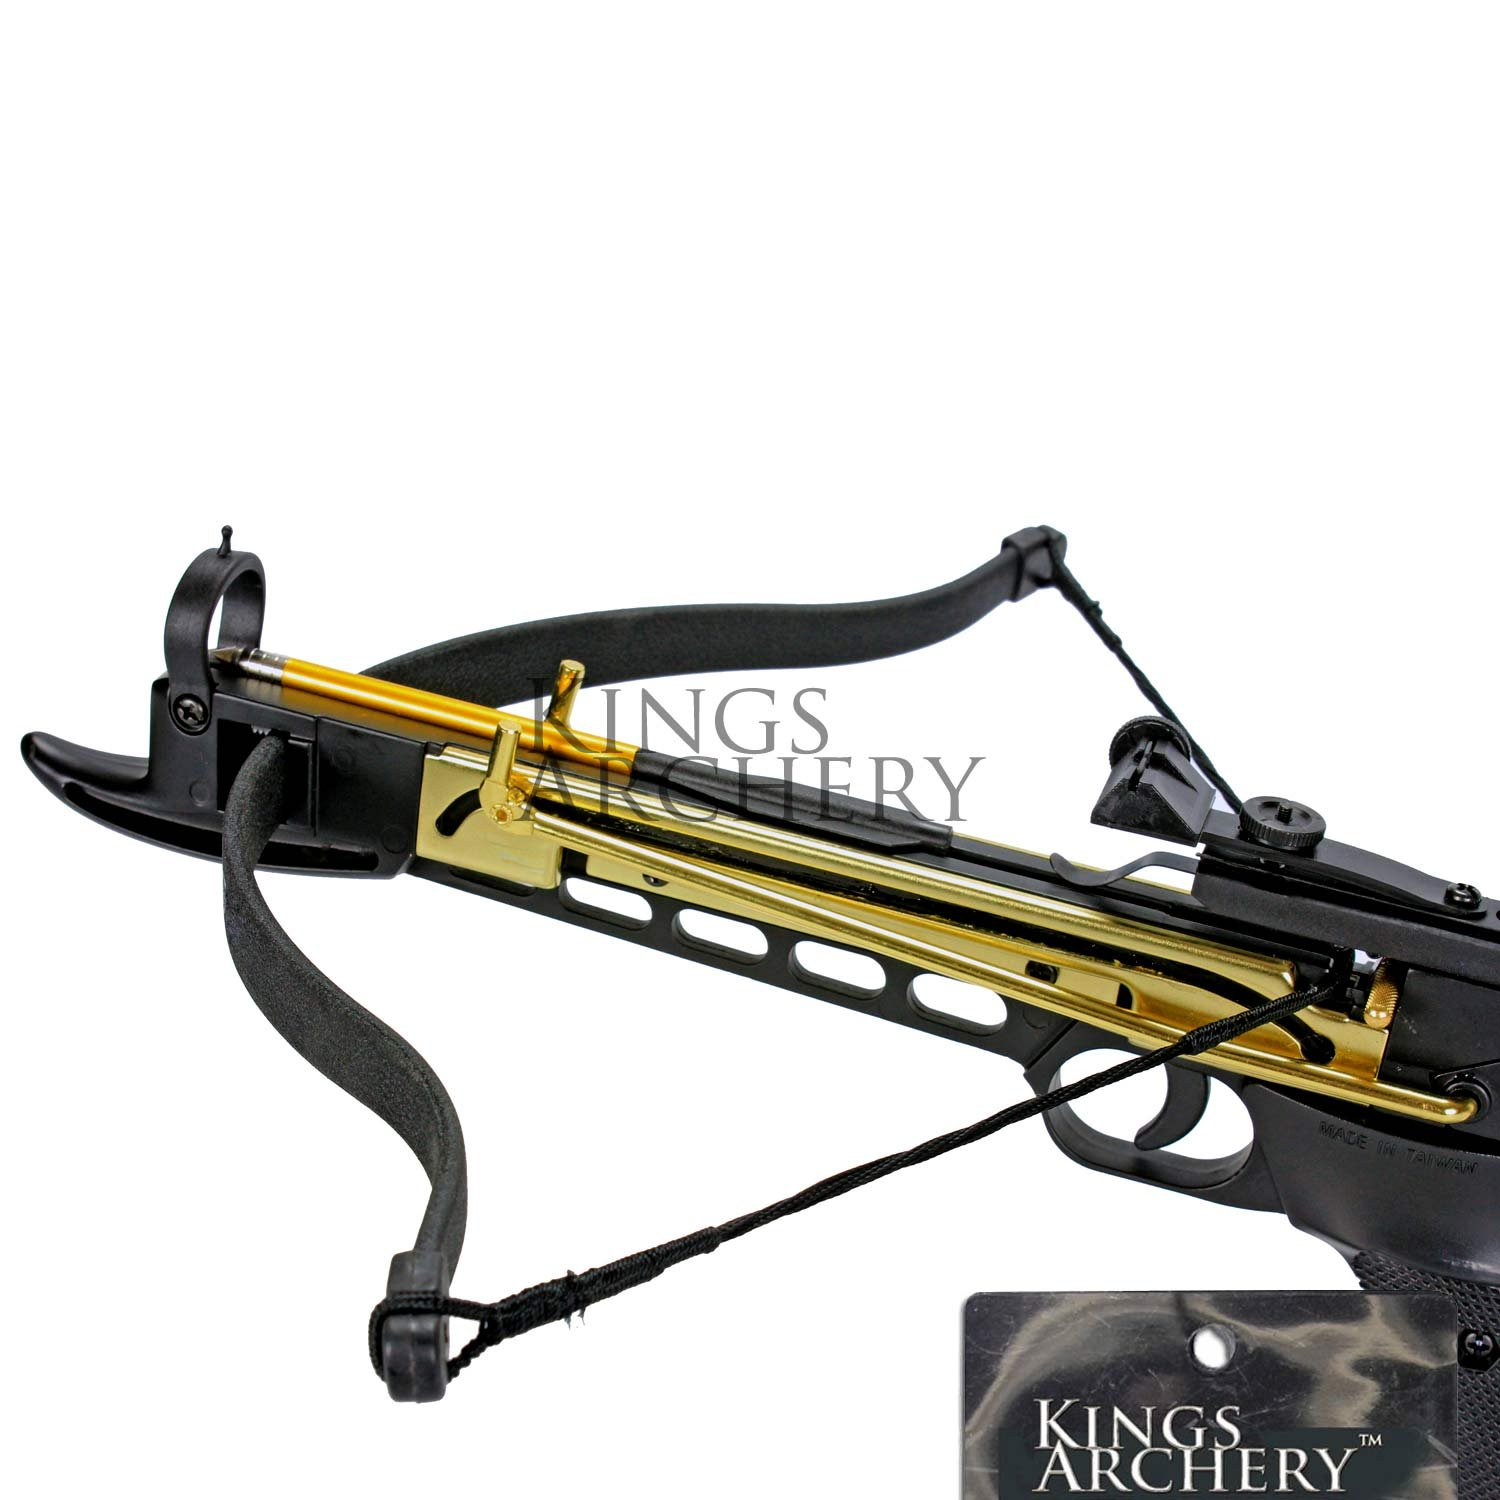 Crossbow Self-Cocking 80 LBS by KingsArchery® with Hunting Scope, 3 Aluminium Arrow Bolts, and Bonus 120-pack of Colored PVC Arrow Bolts + KingsArchery® Warranty by KingsArchery (Image #4)